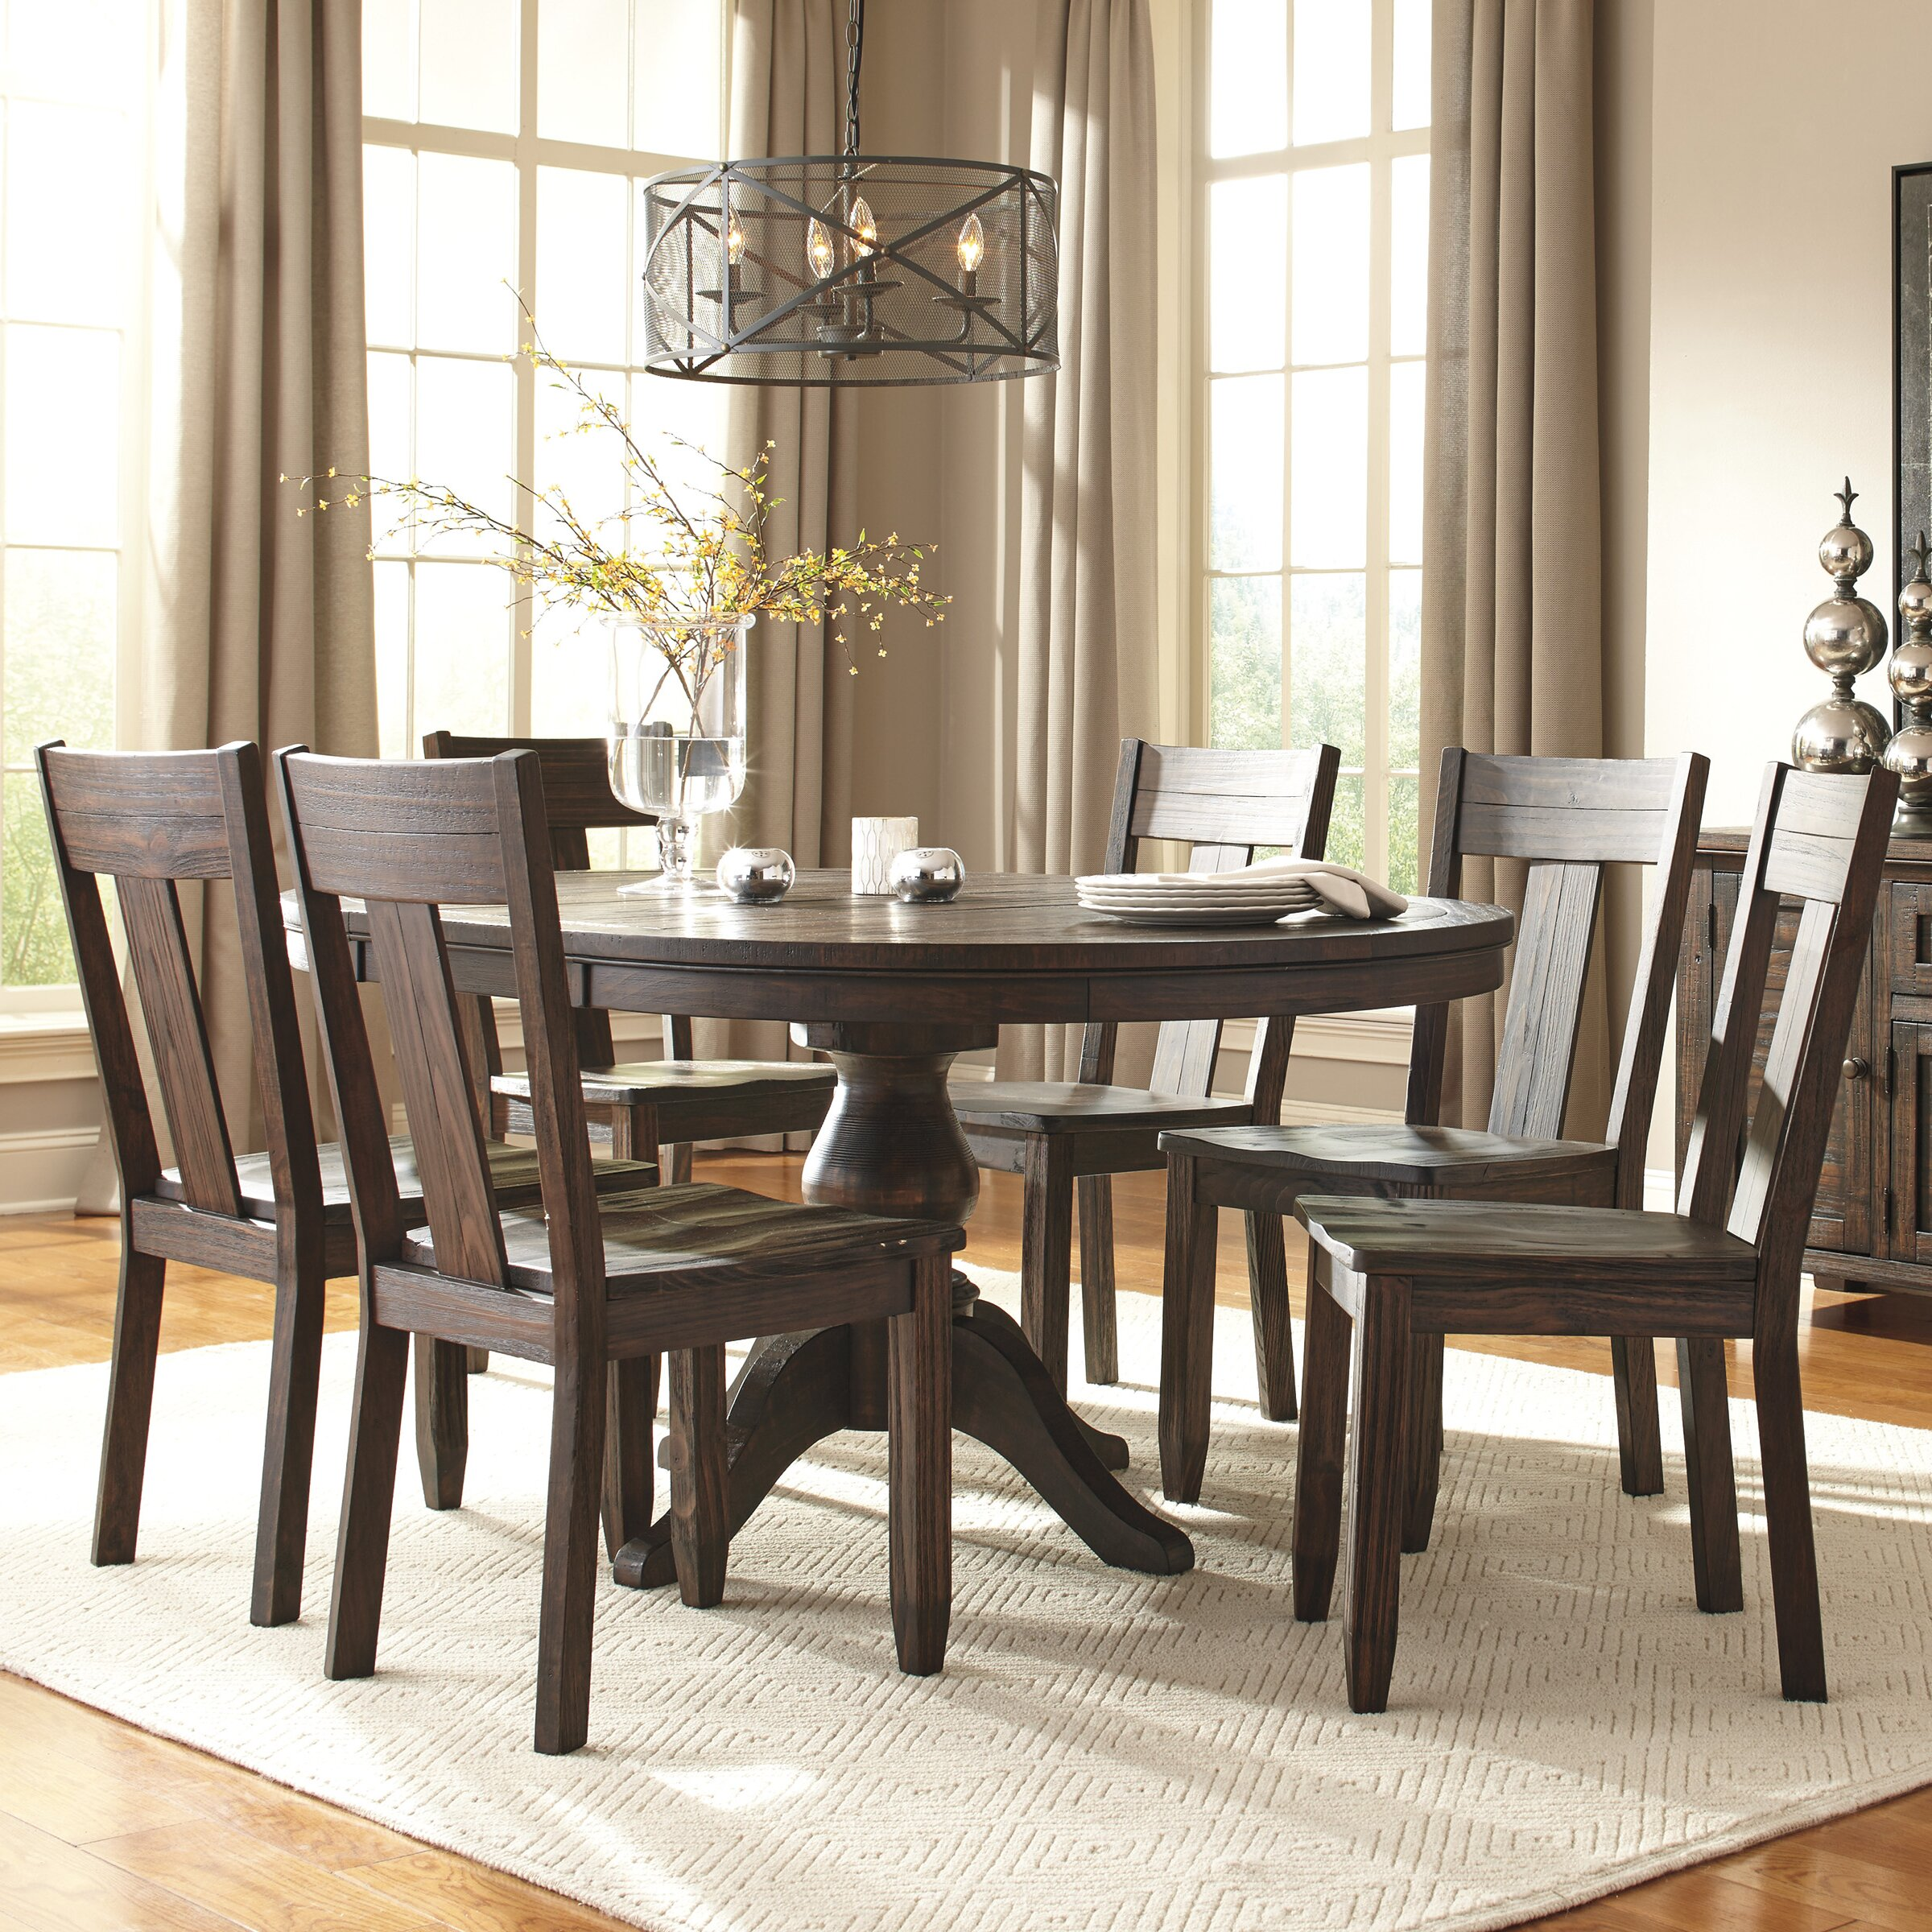 Signature design by ashley 7 piece dining set reviews for 7 piece dining room set